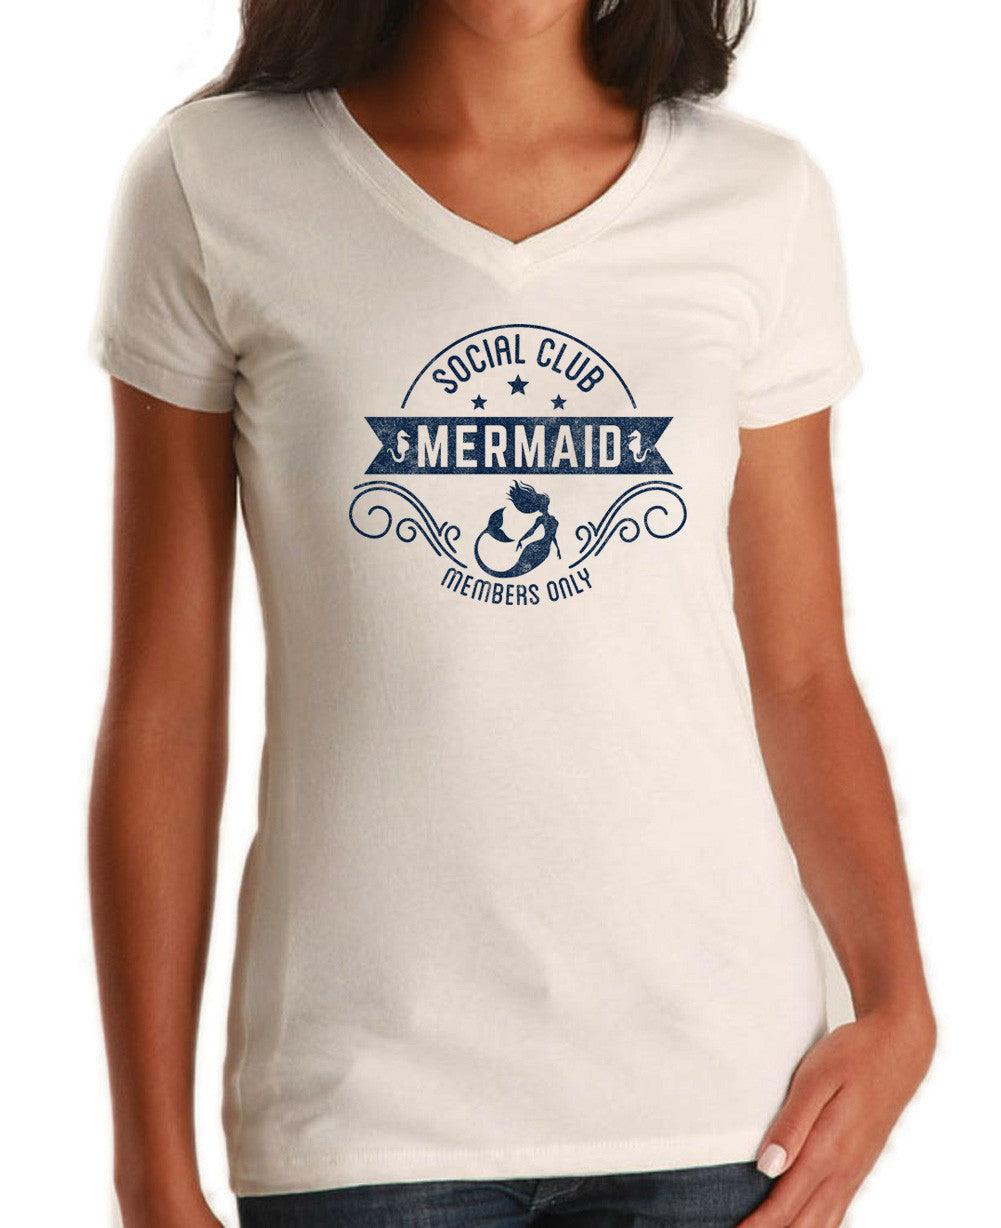 Women's Mermaid Social Club Vneck T-Shirt